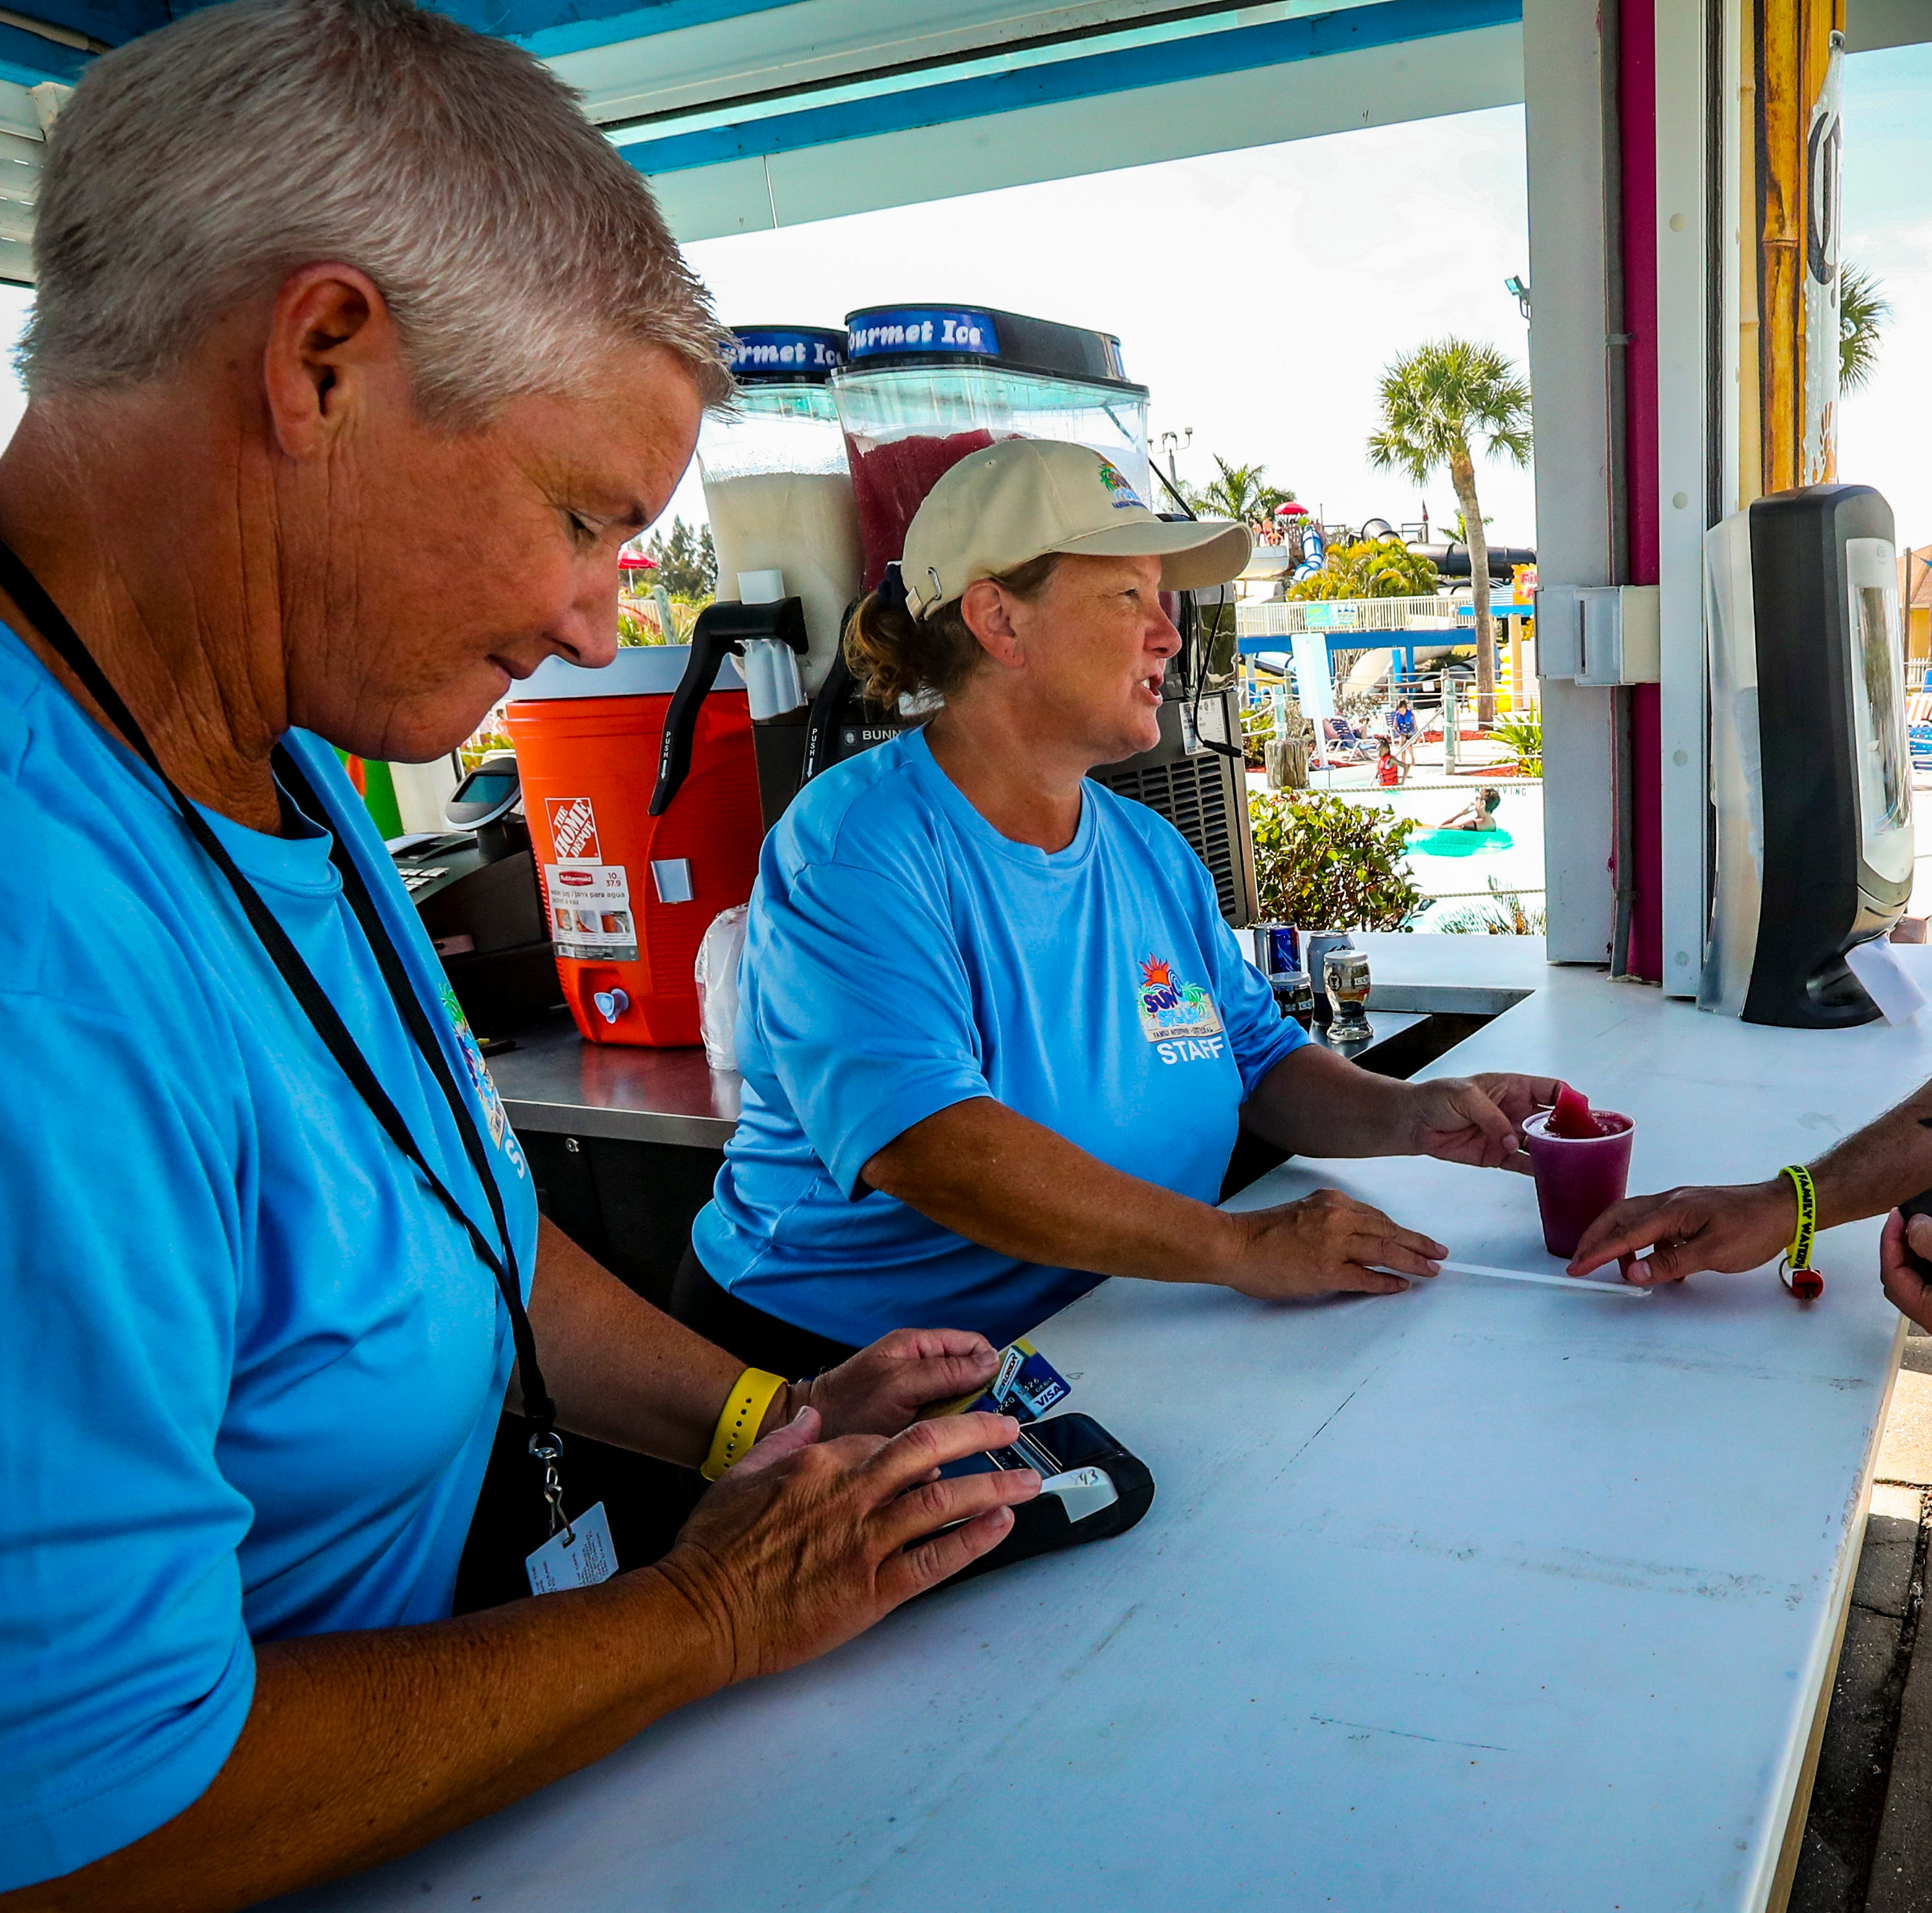 Smooth sailing for first day of alcohol sales at Sun Splash